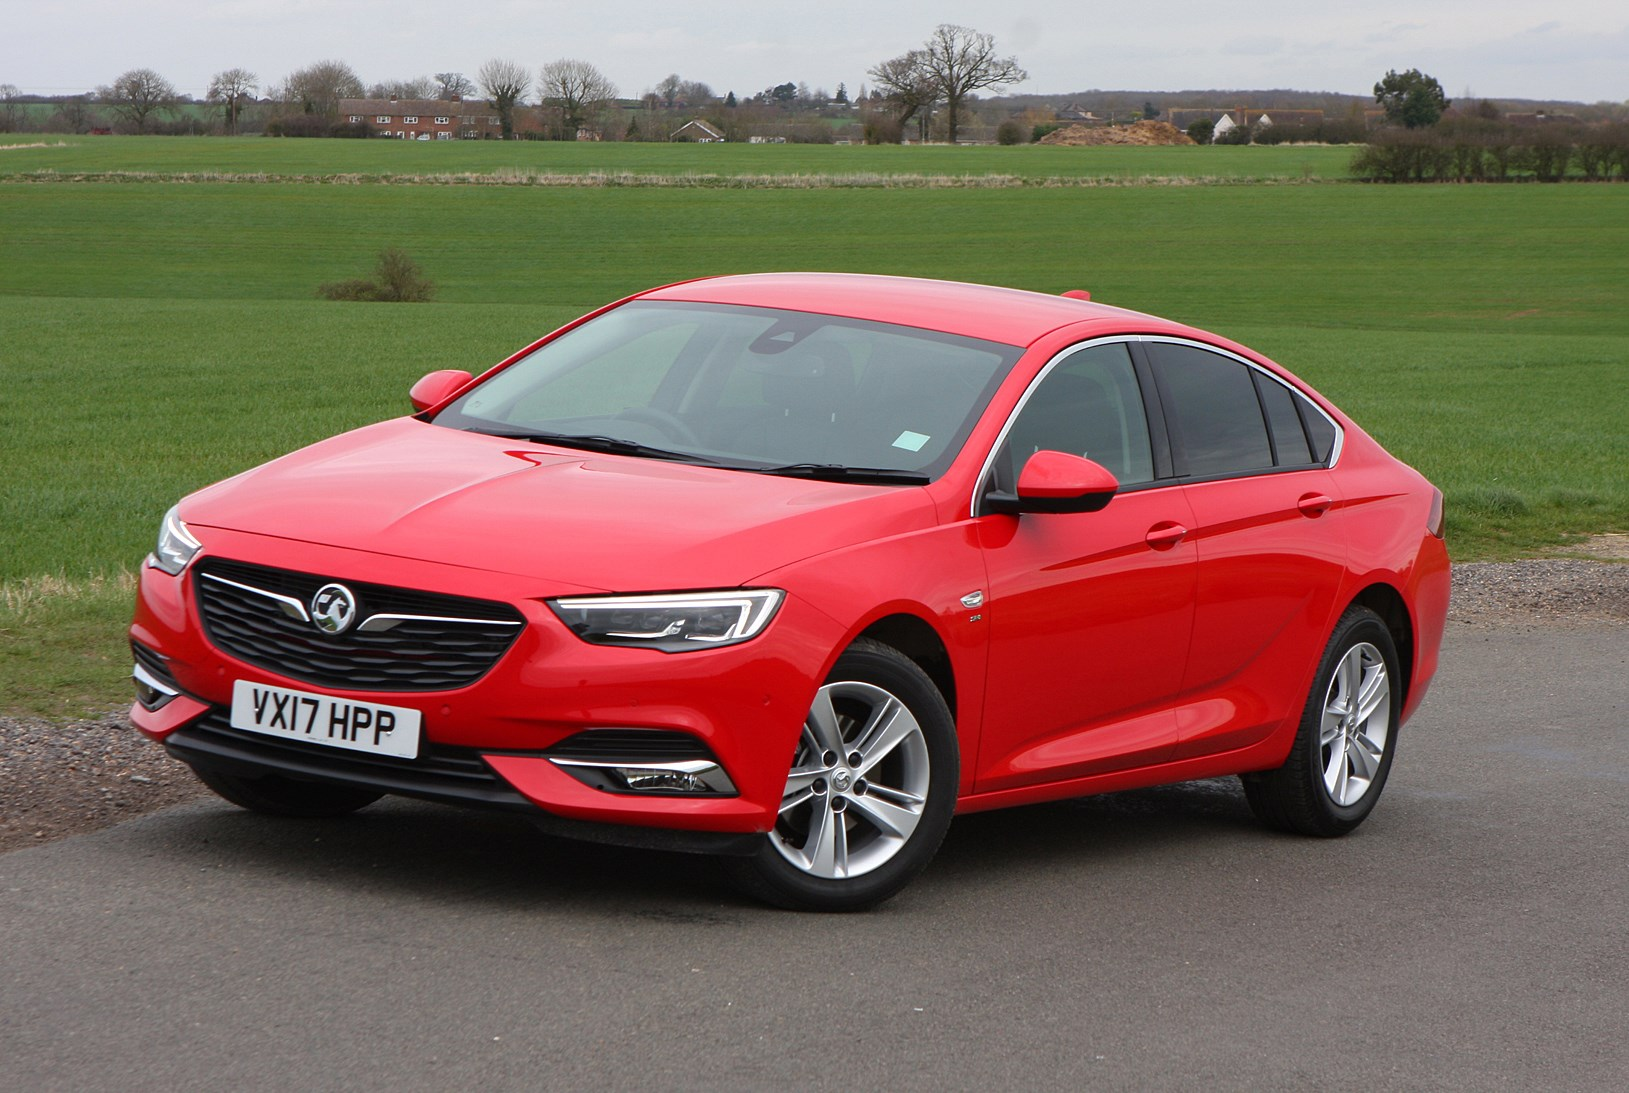 vauxhall insignia grand sport review 2017 parkers. Black Bedroom Furniture Sets. Home Design Ideas